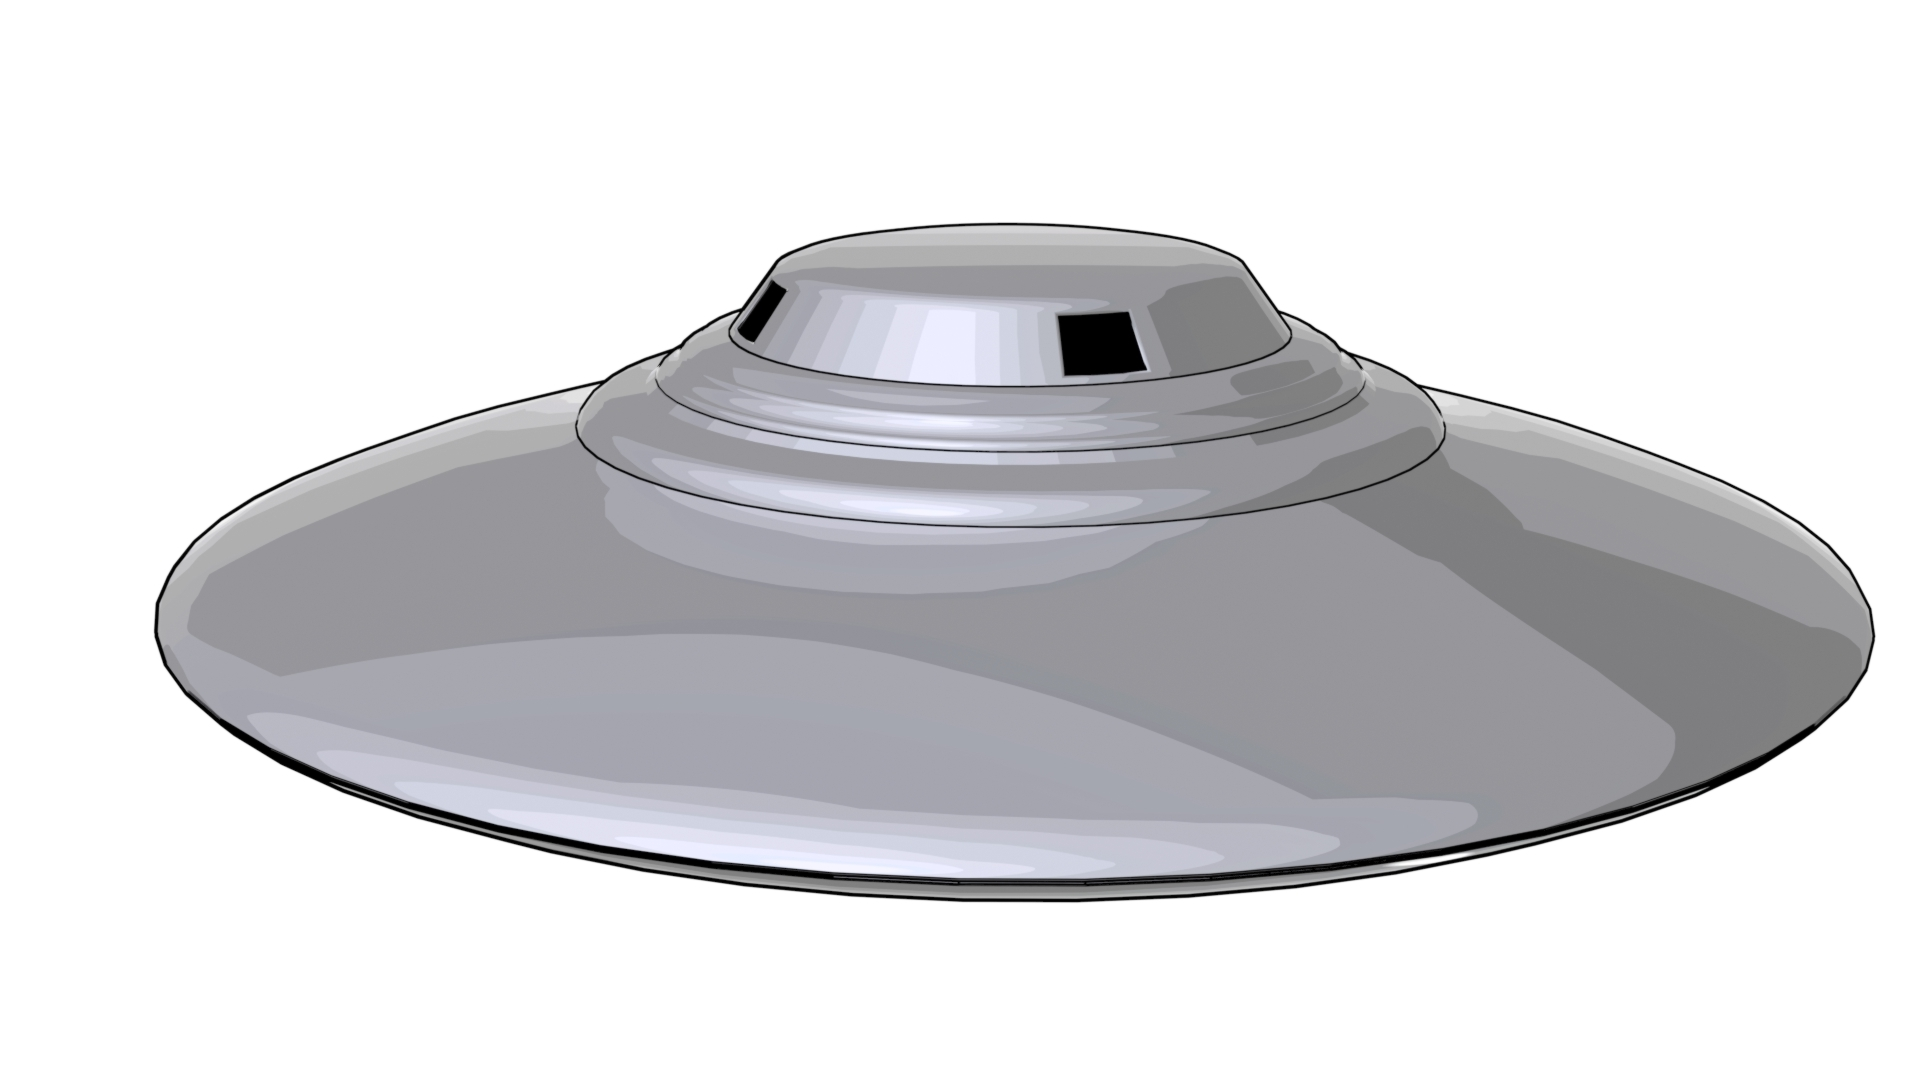 Ufo Classic Flying Saucer 01 By Sickleadzdk 3docean